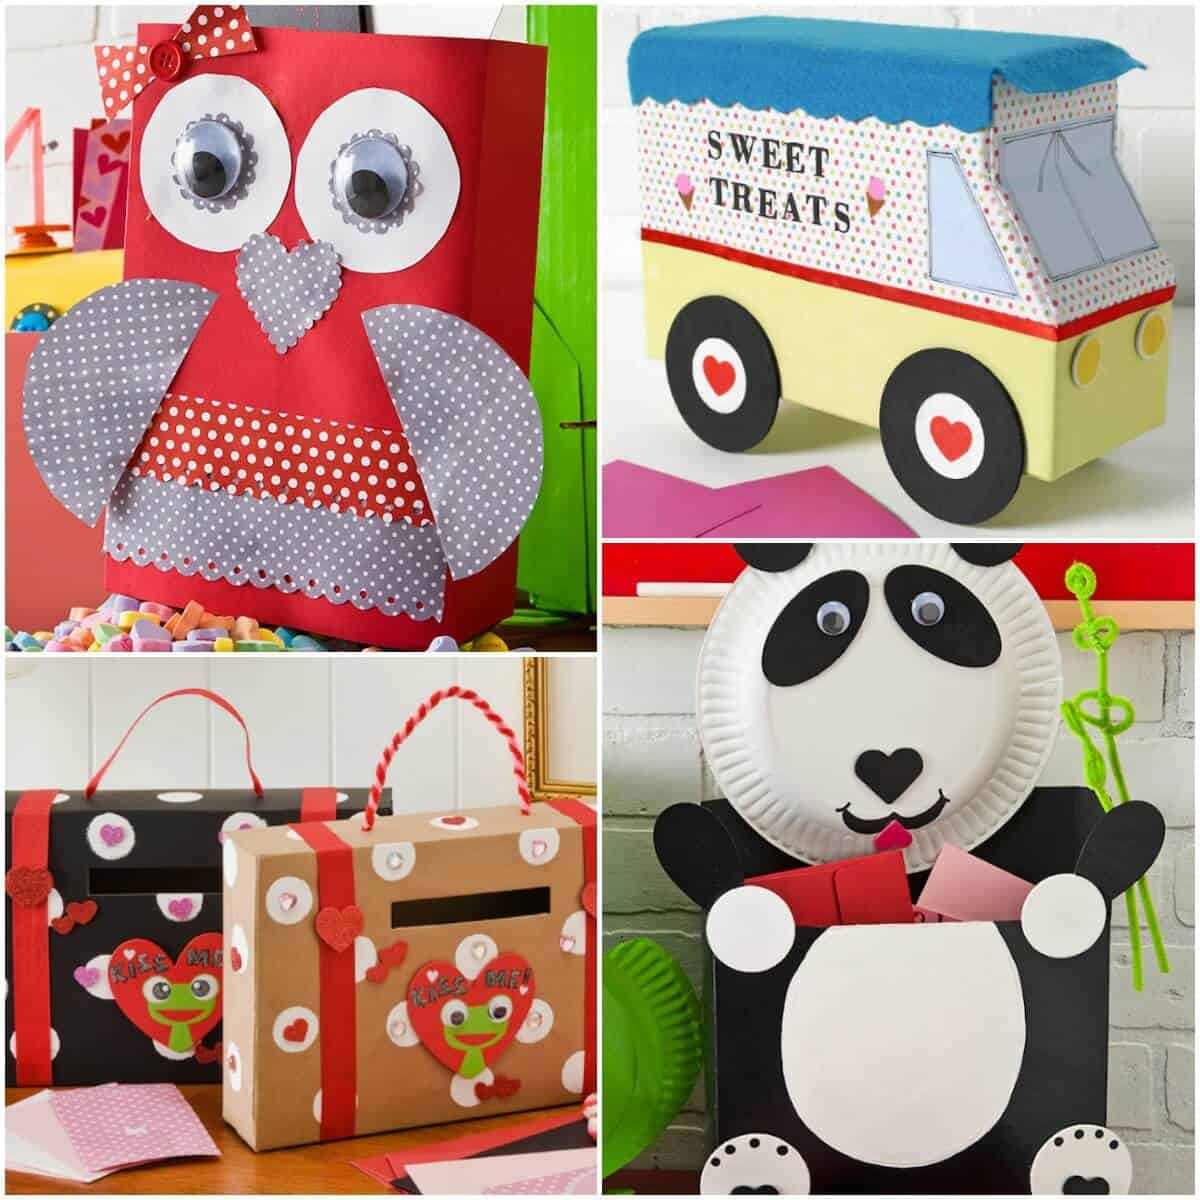 Ideas For Decorating Valentine Box: 8 Ideas For Valentine Boxes